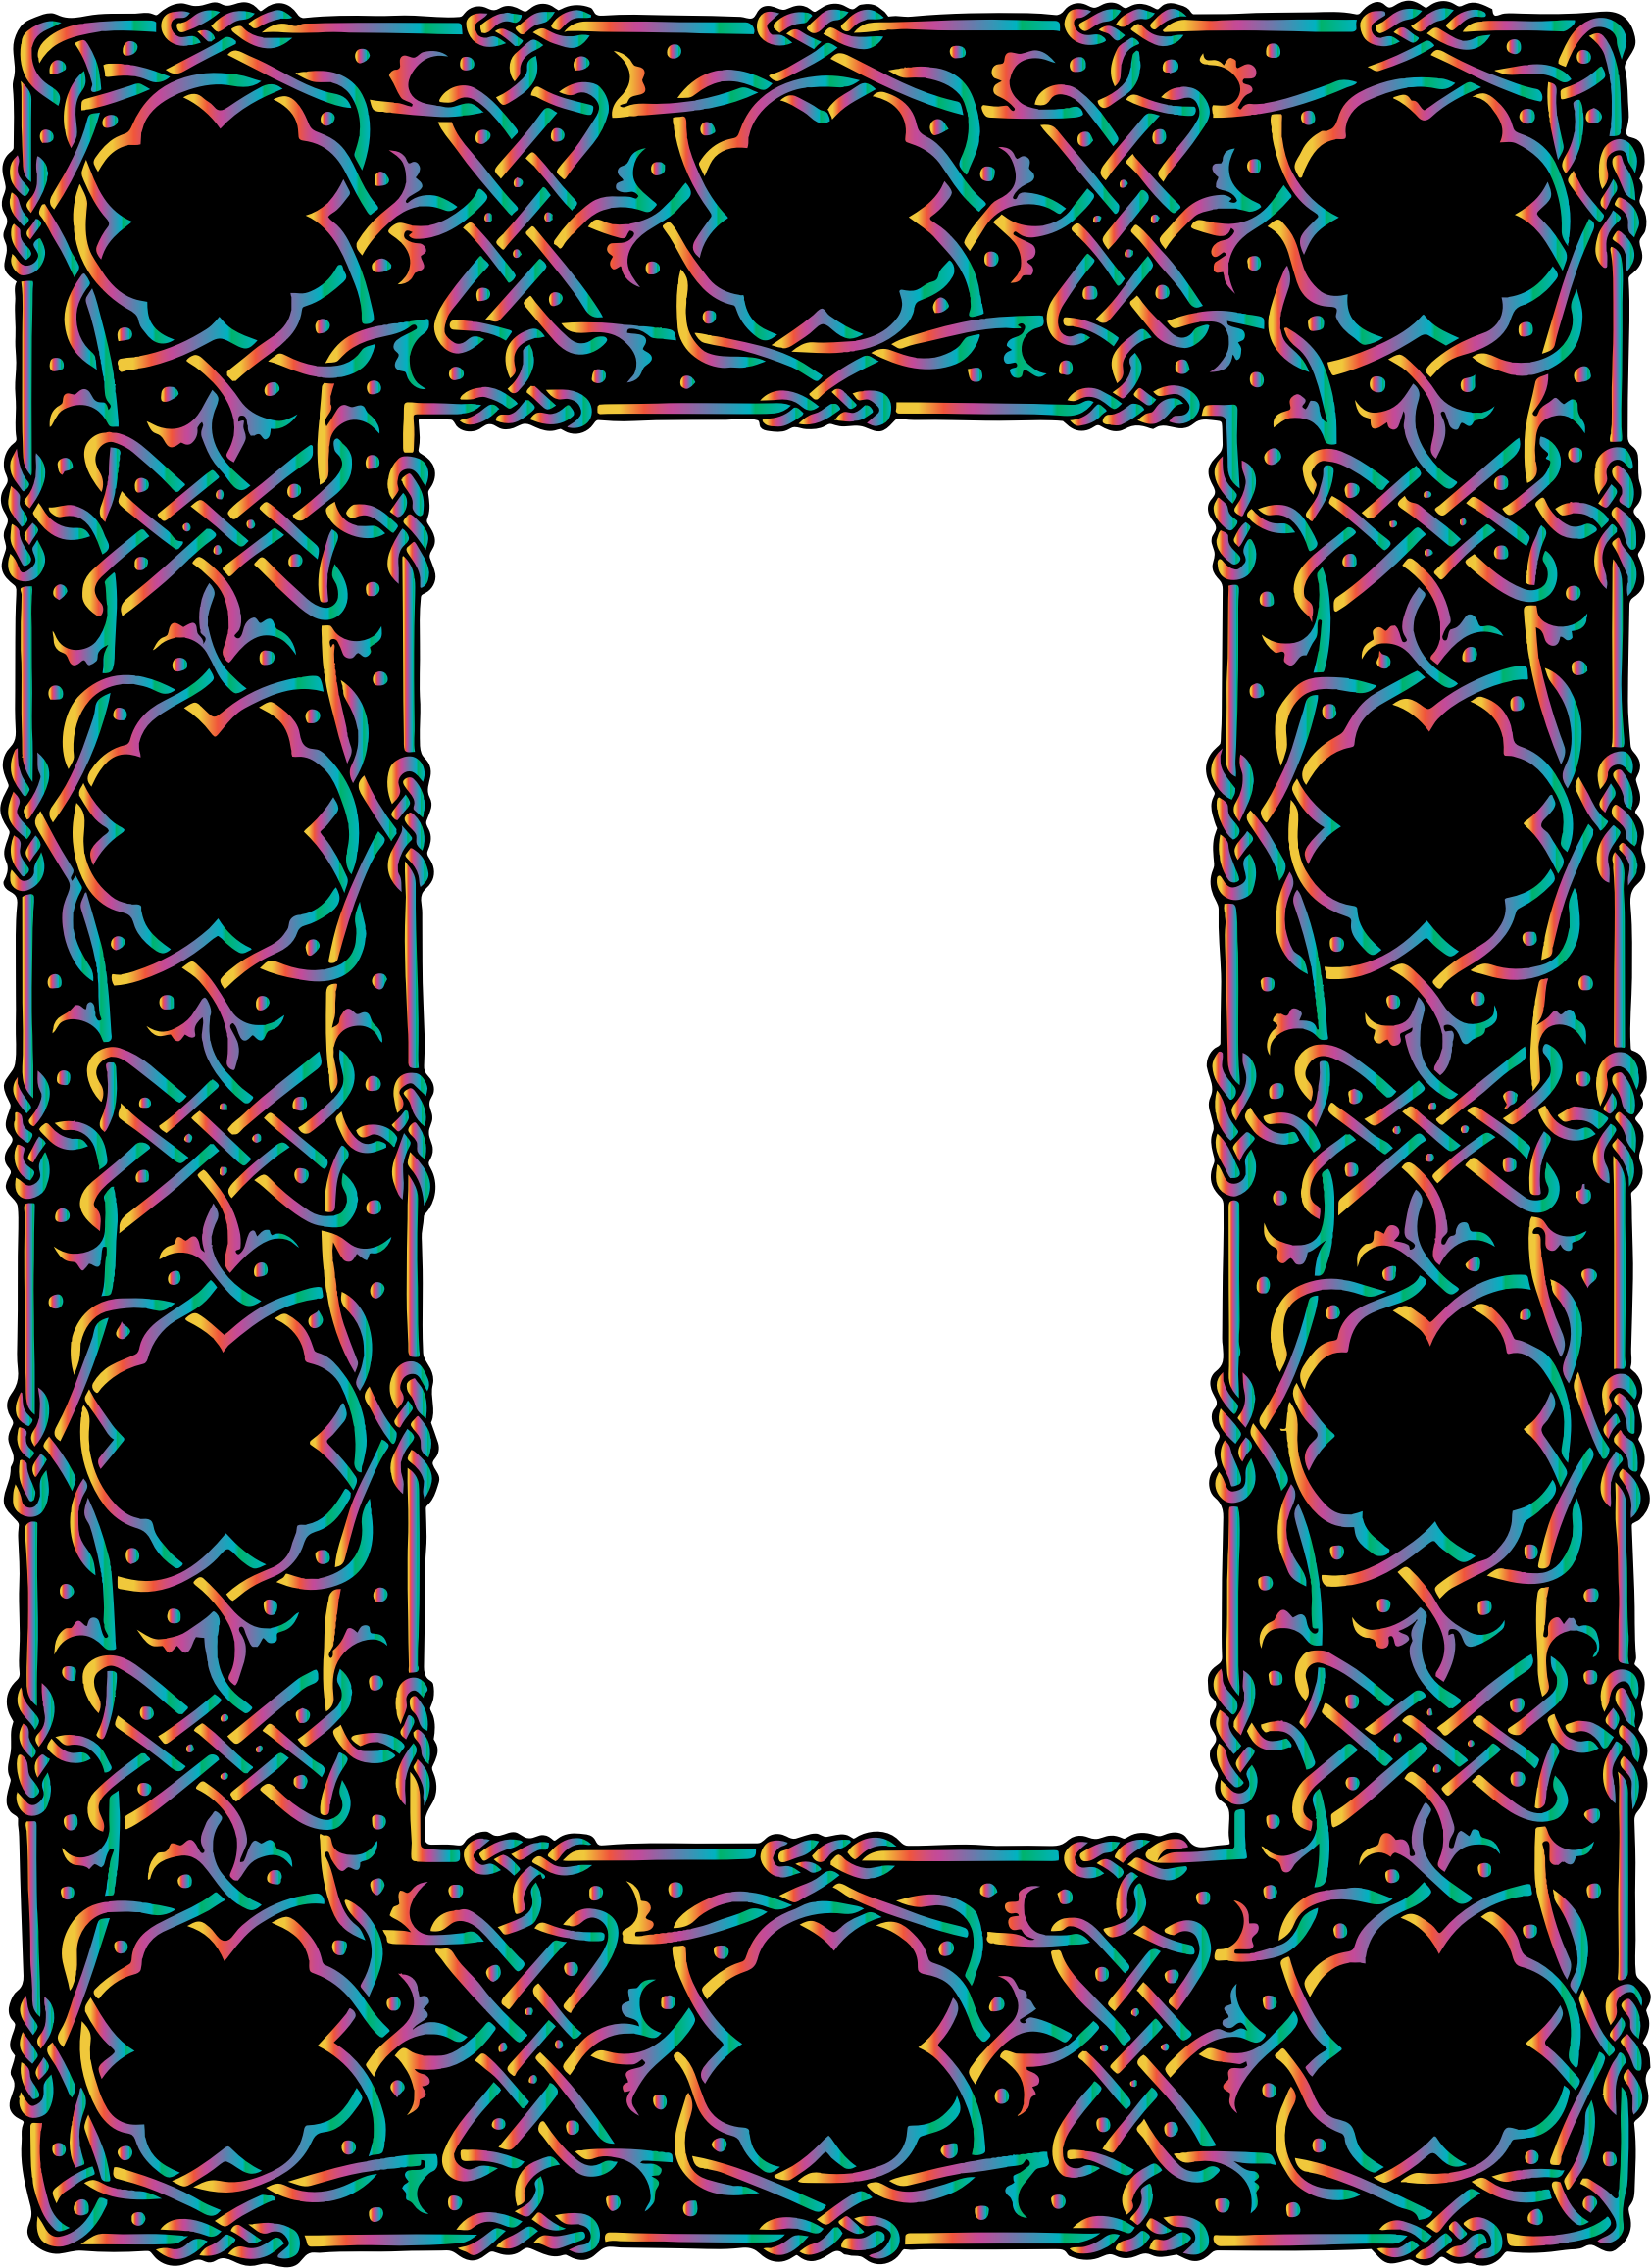 Prismatic Ornate Geometric Frame 2 by GDJ